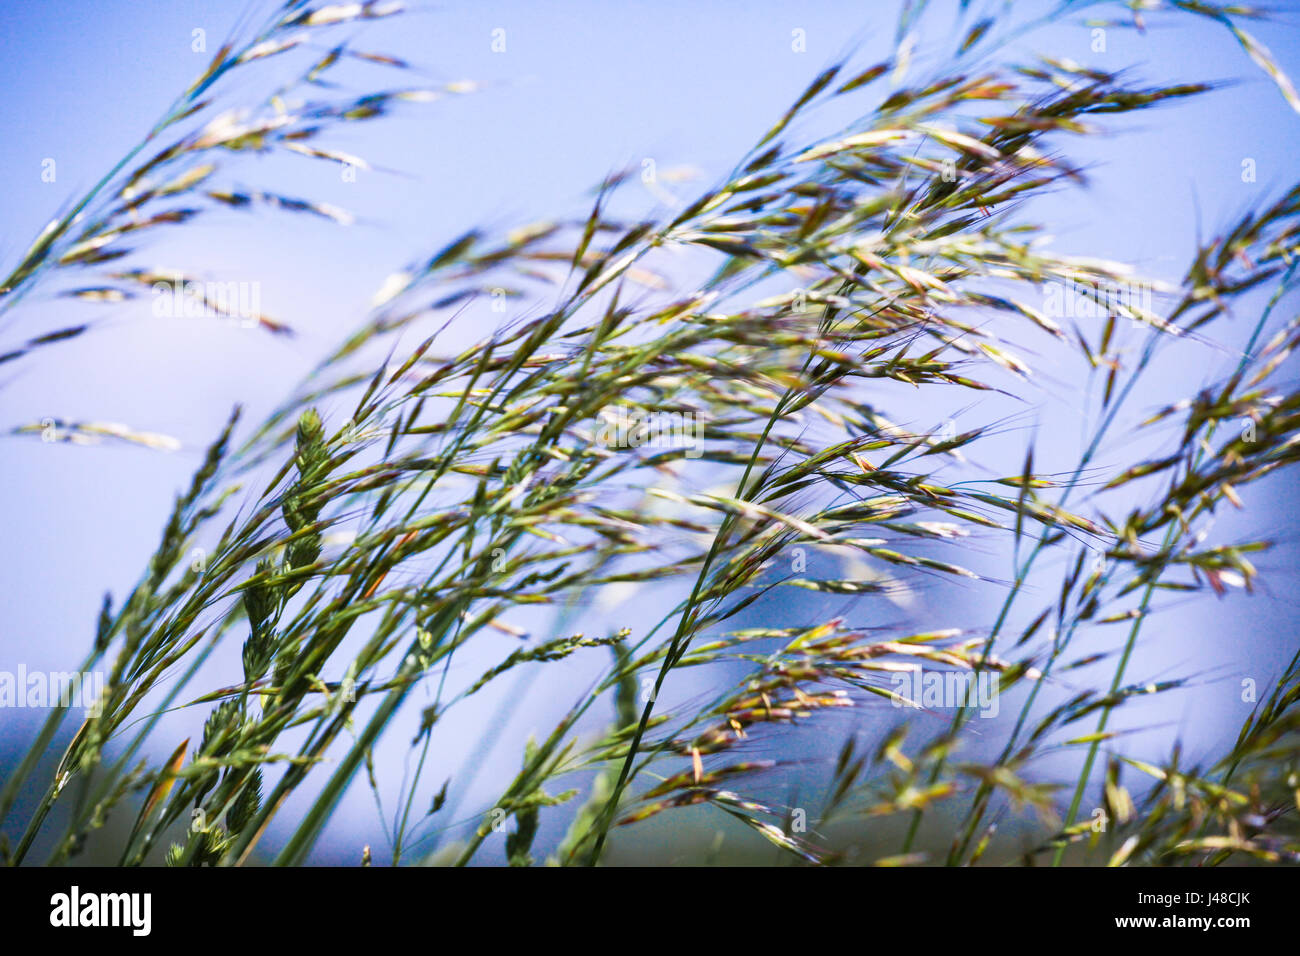 Thin delicate grasses waft in the summer breeze in a field meadow - Stock Image